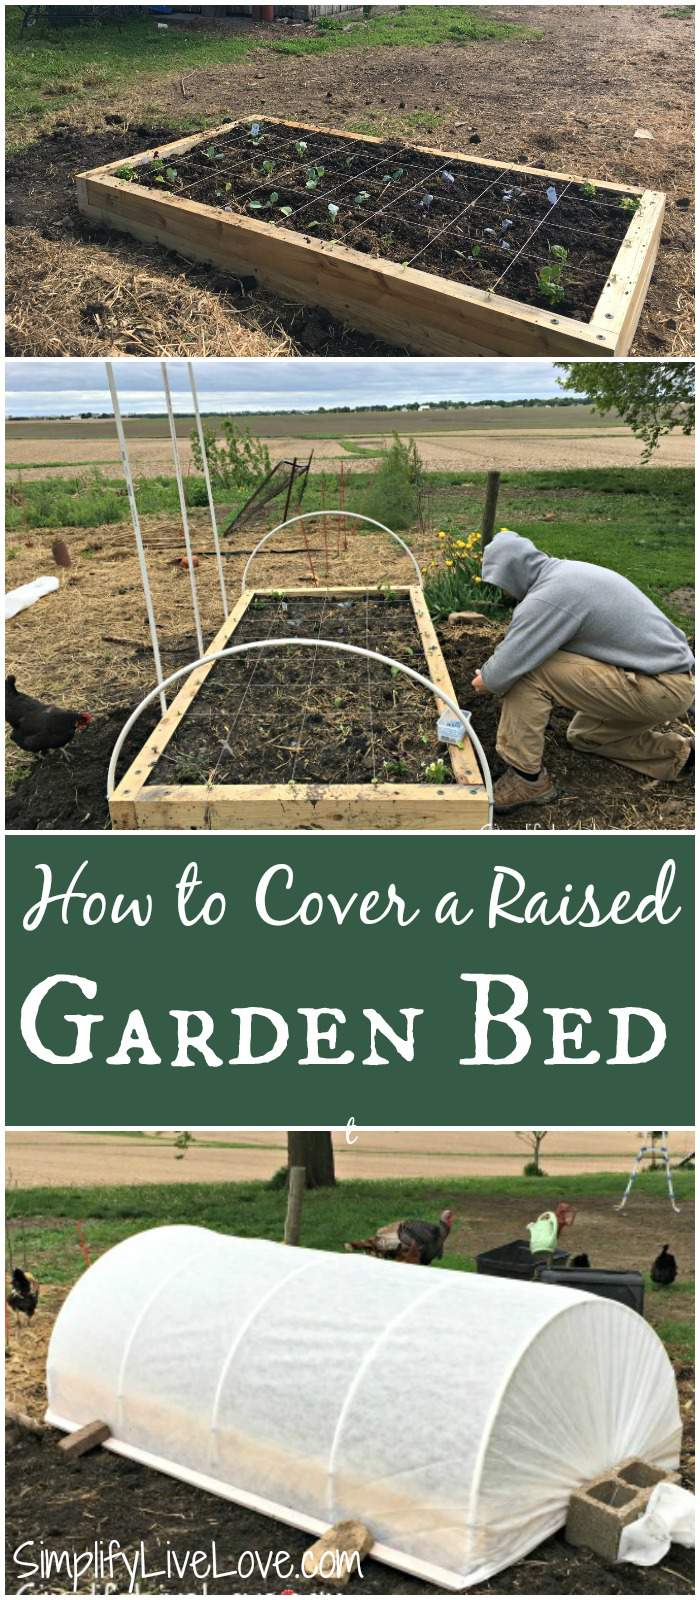 How to cover a raised garden bed to protect against insects and also to extend your growing season. It's not super hard!